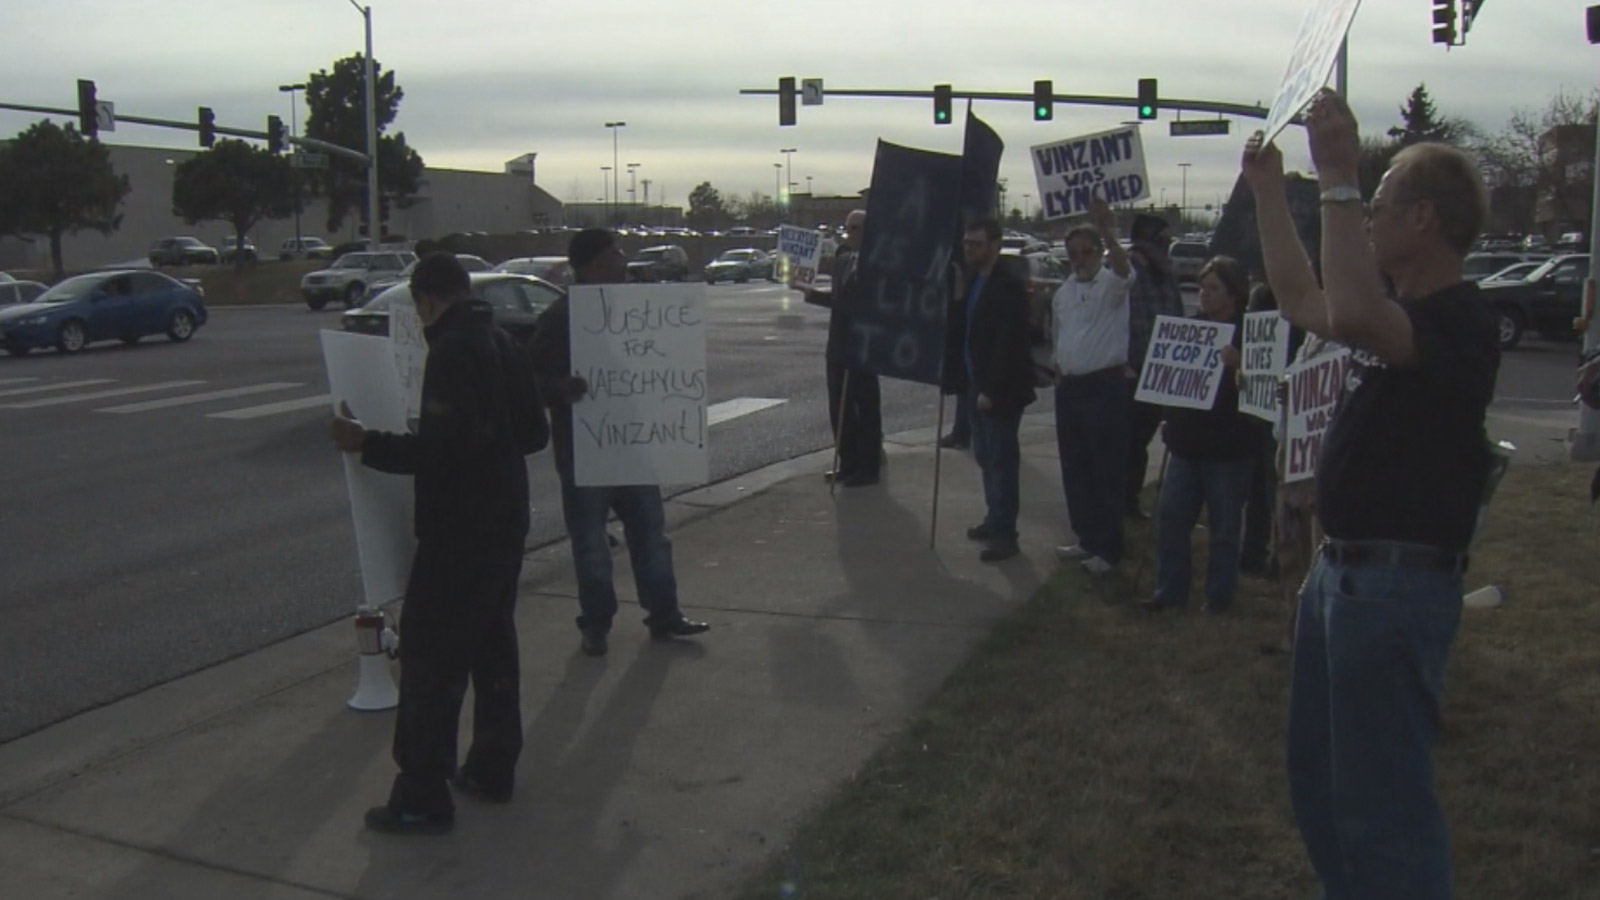 Protesters gathered near the Aurora Police Headquarters to protest the deadly shooting of  Naeschylus Vinzant (credit: CBS)